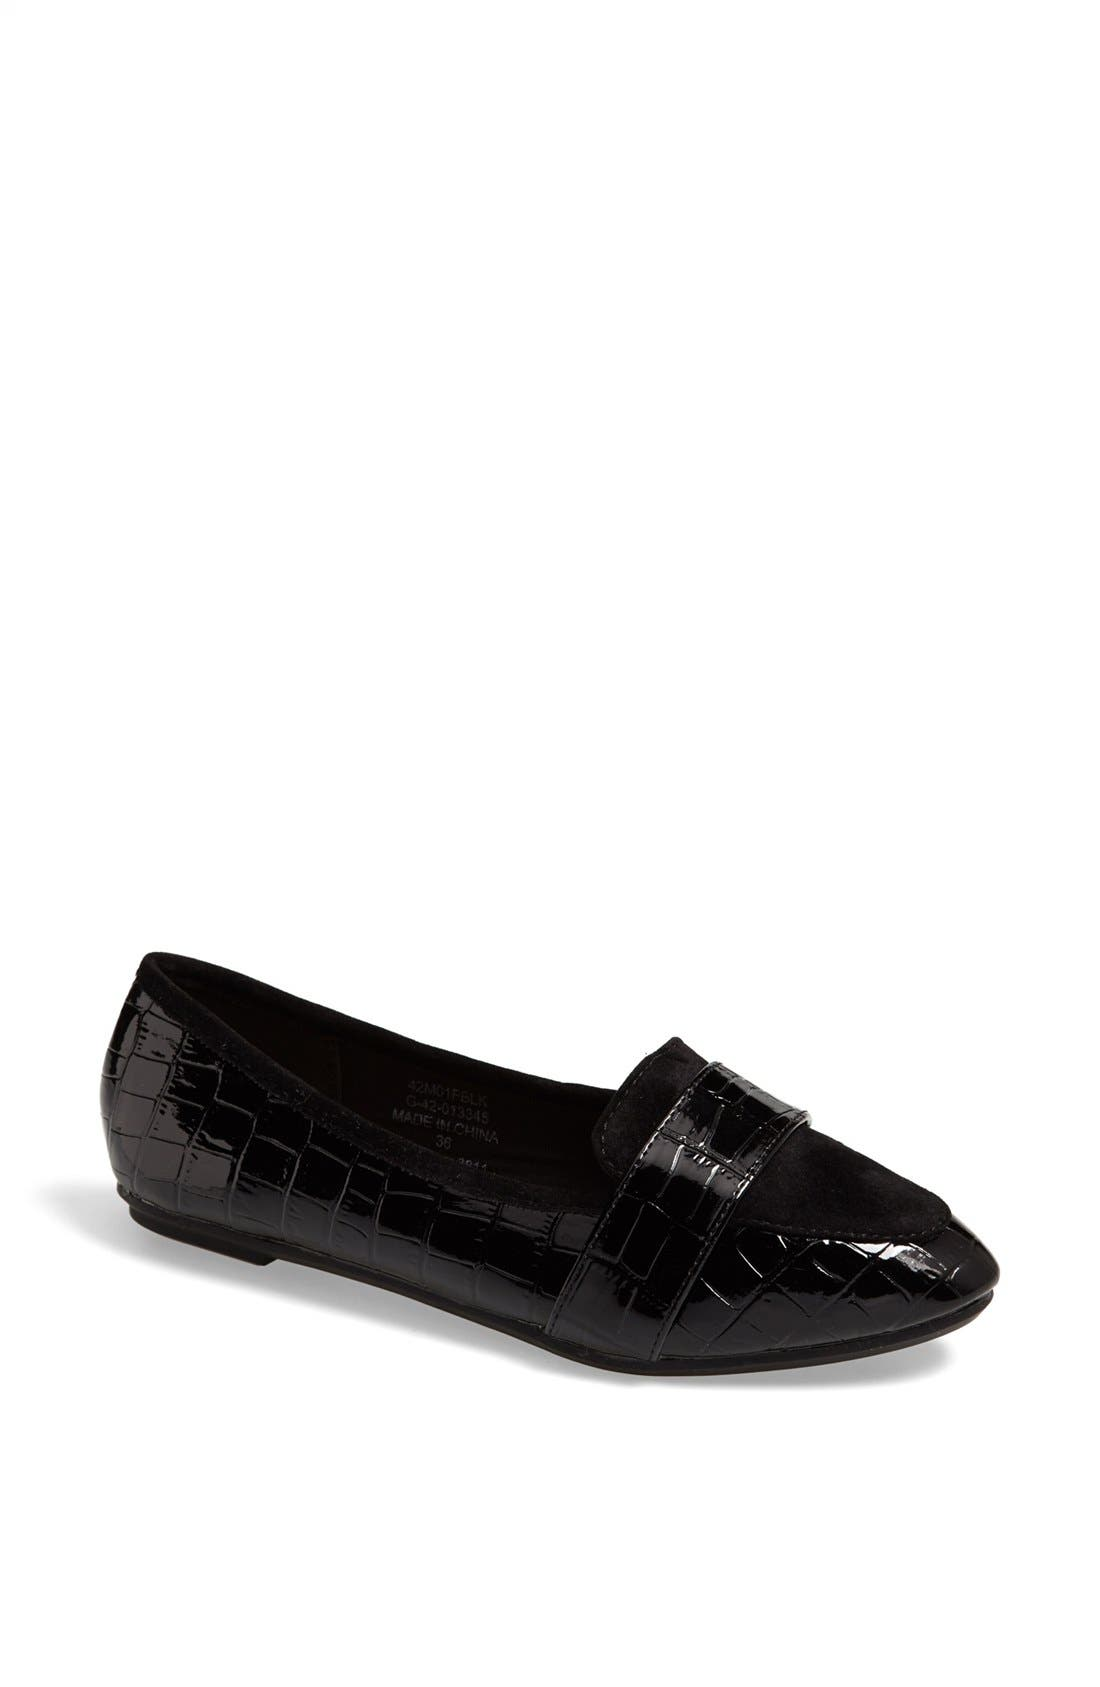 Alternate Image 1 Selected - Topshop 'Mardi 2' Croc Embossed Flat